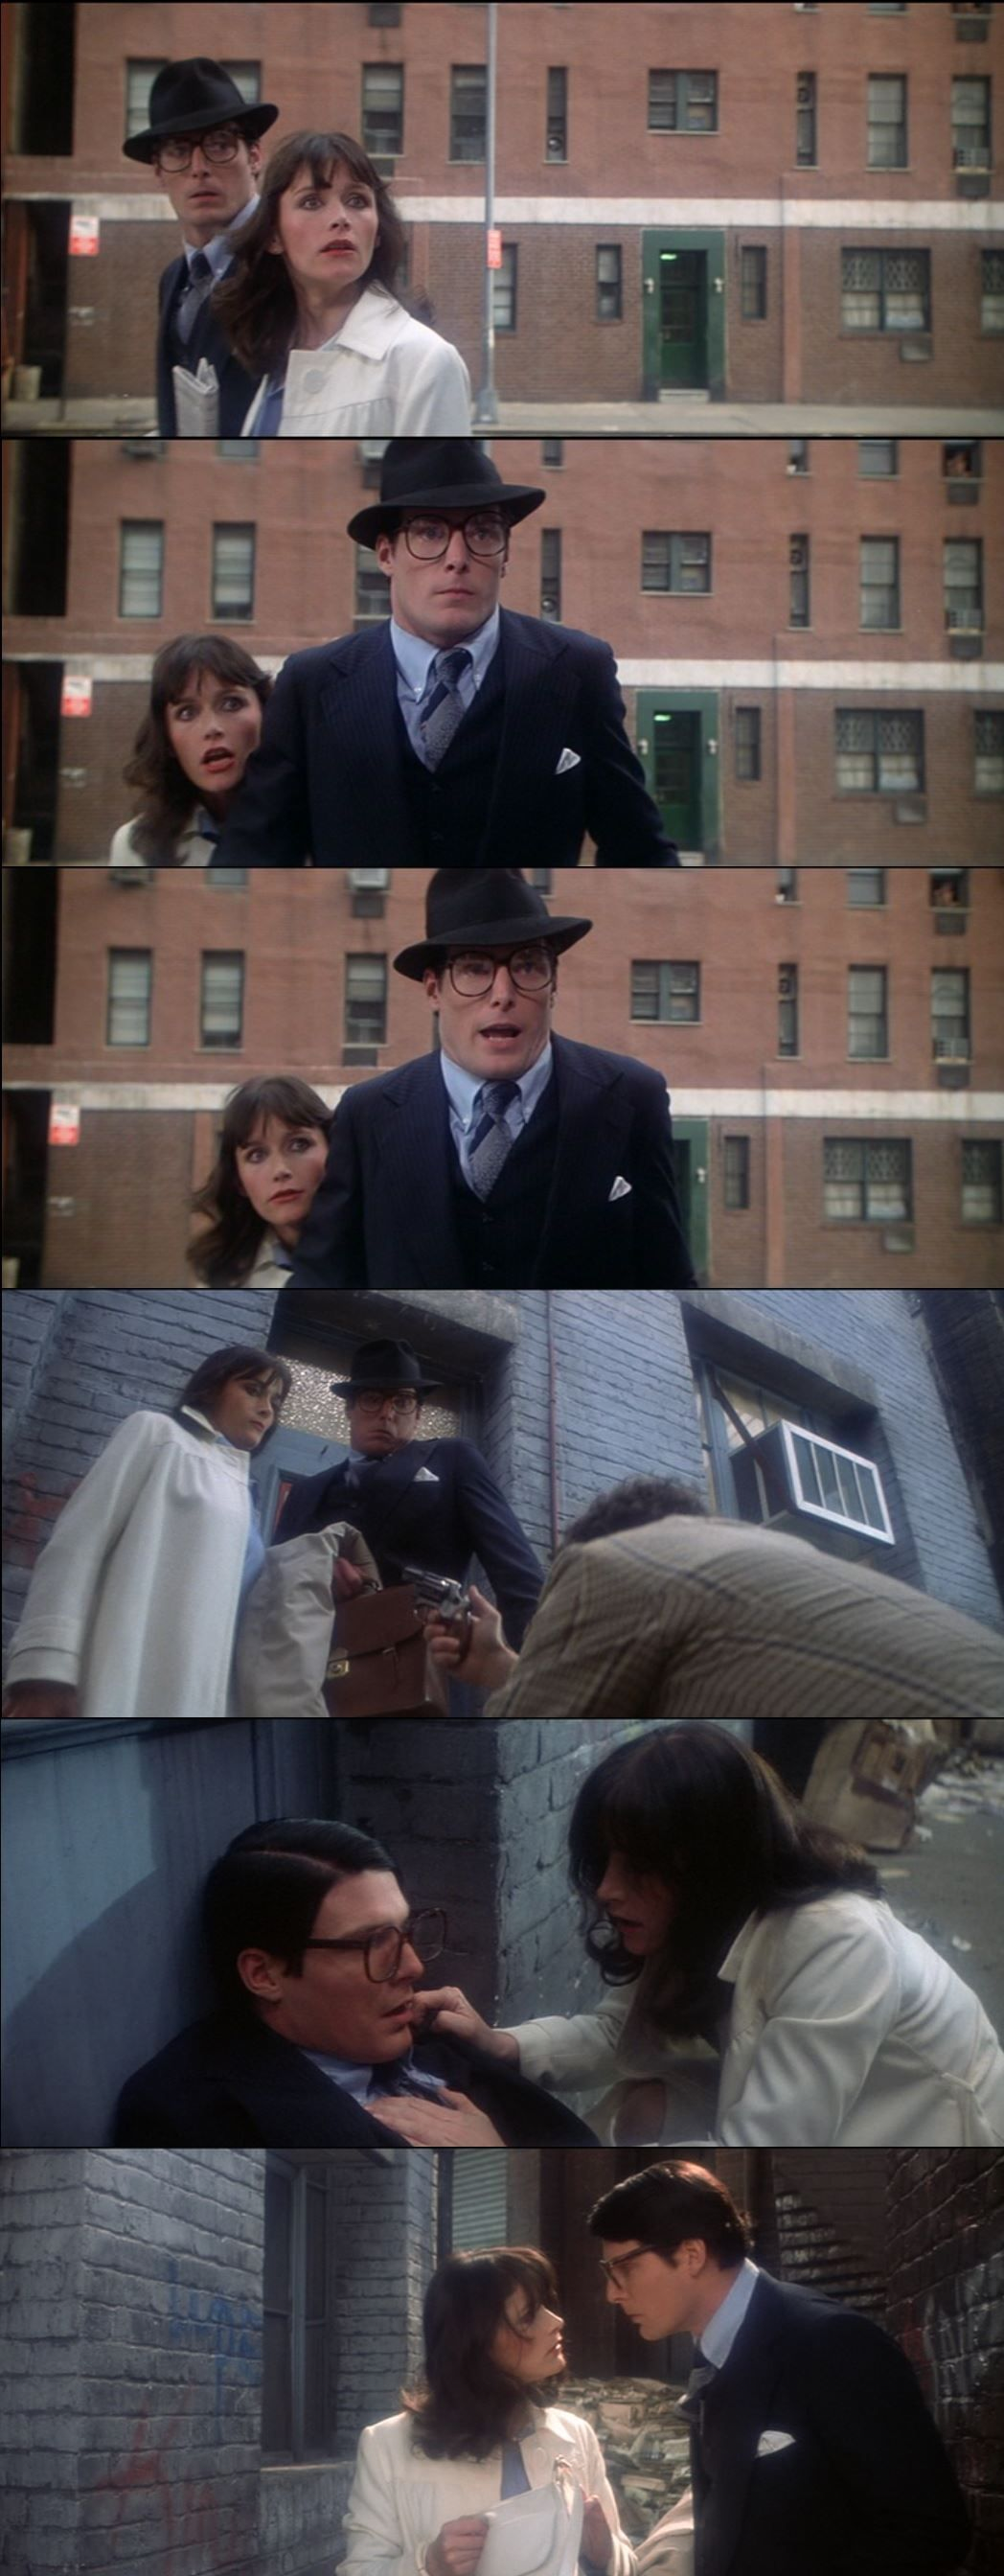 Clark and Lois's first adventure together in Superman: The Movie 1978